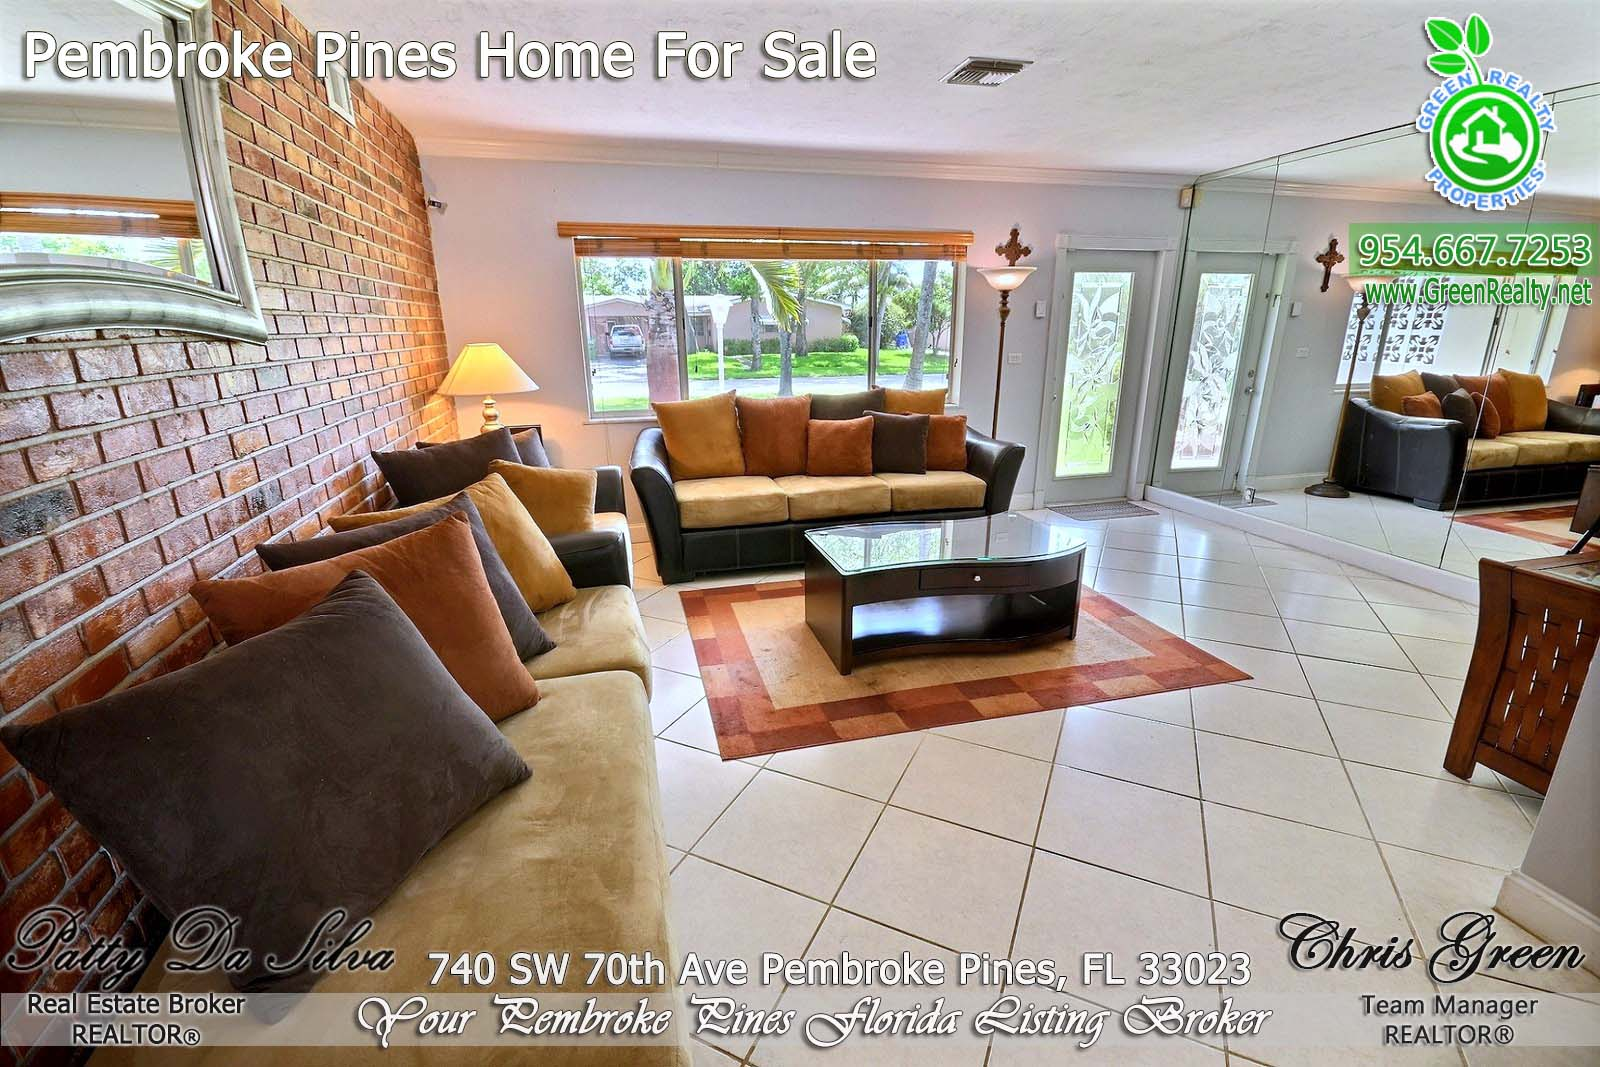 6 Pembroke Pines Homes For Sale (2)